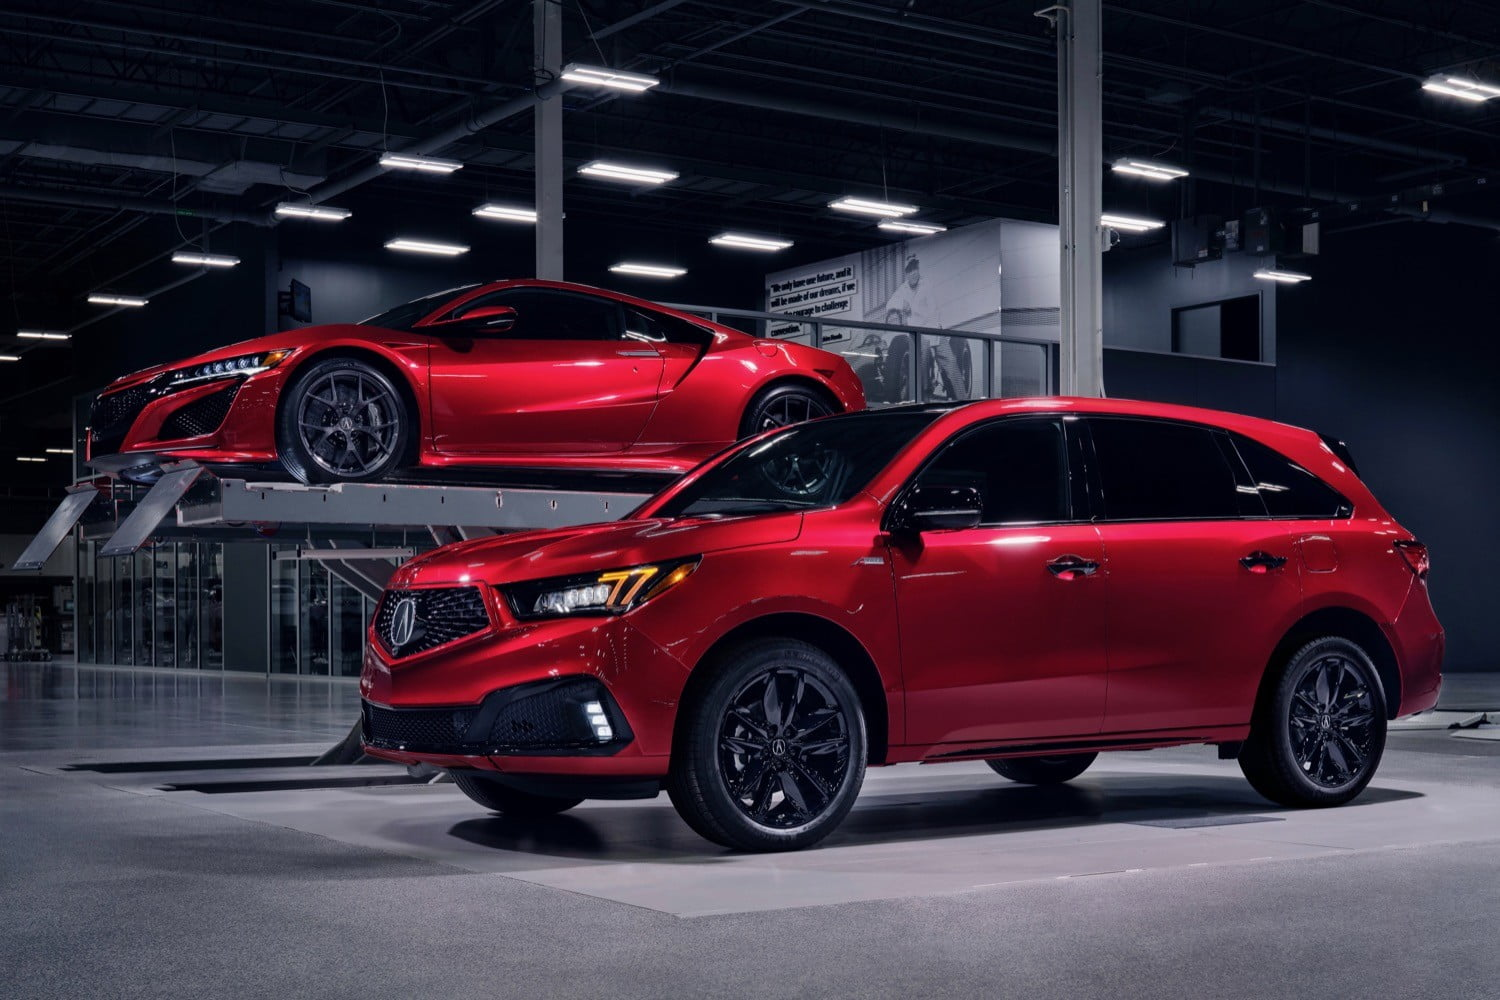 Acura adds some supercar touches to its MDX family crossover